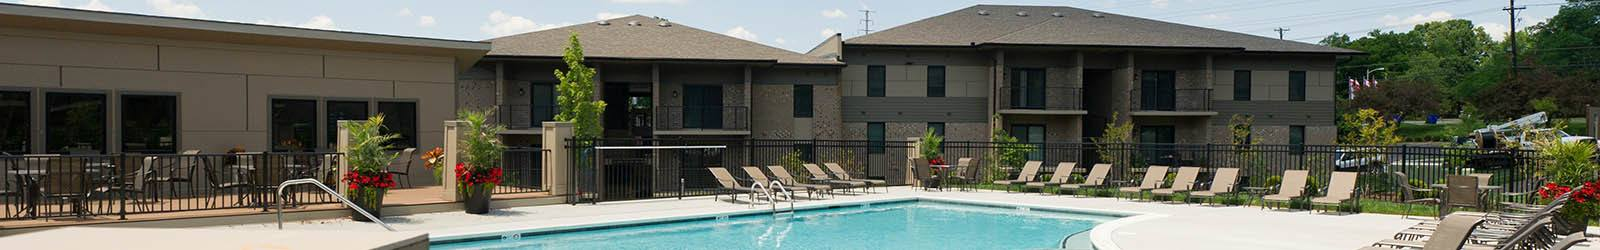 Apartments available at Lakewood Park Apartments in Lexington, KY